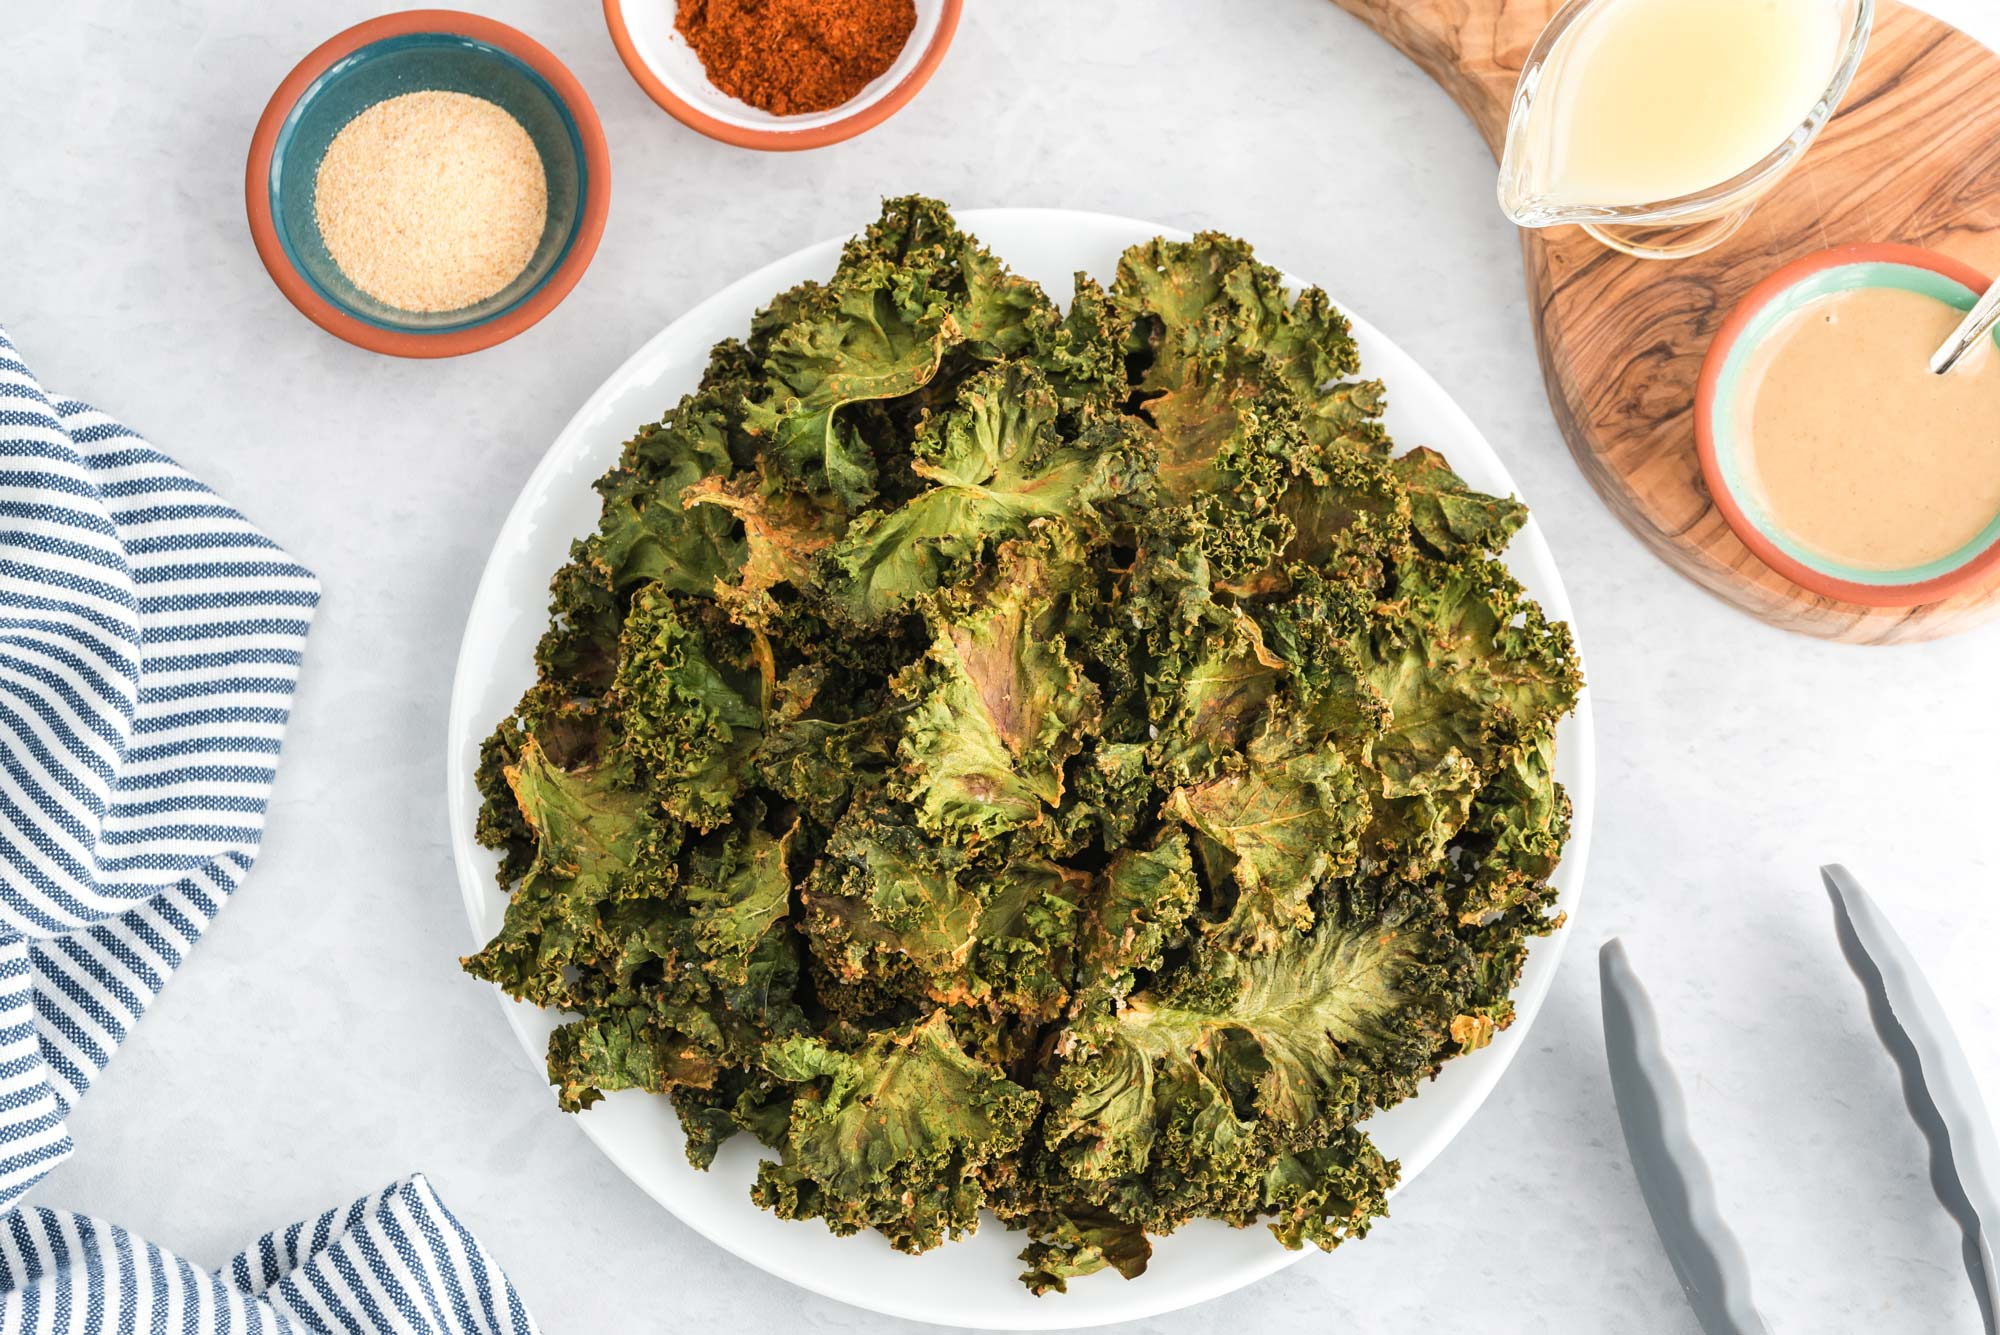 chili lime kale chips on plate